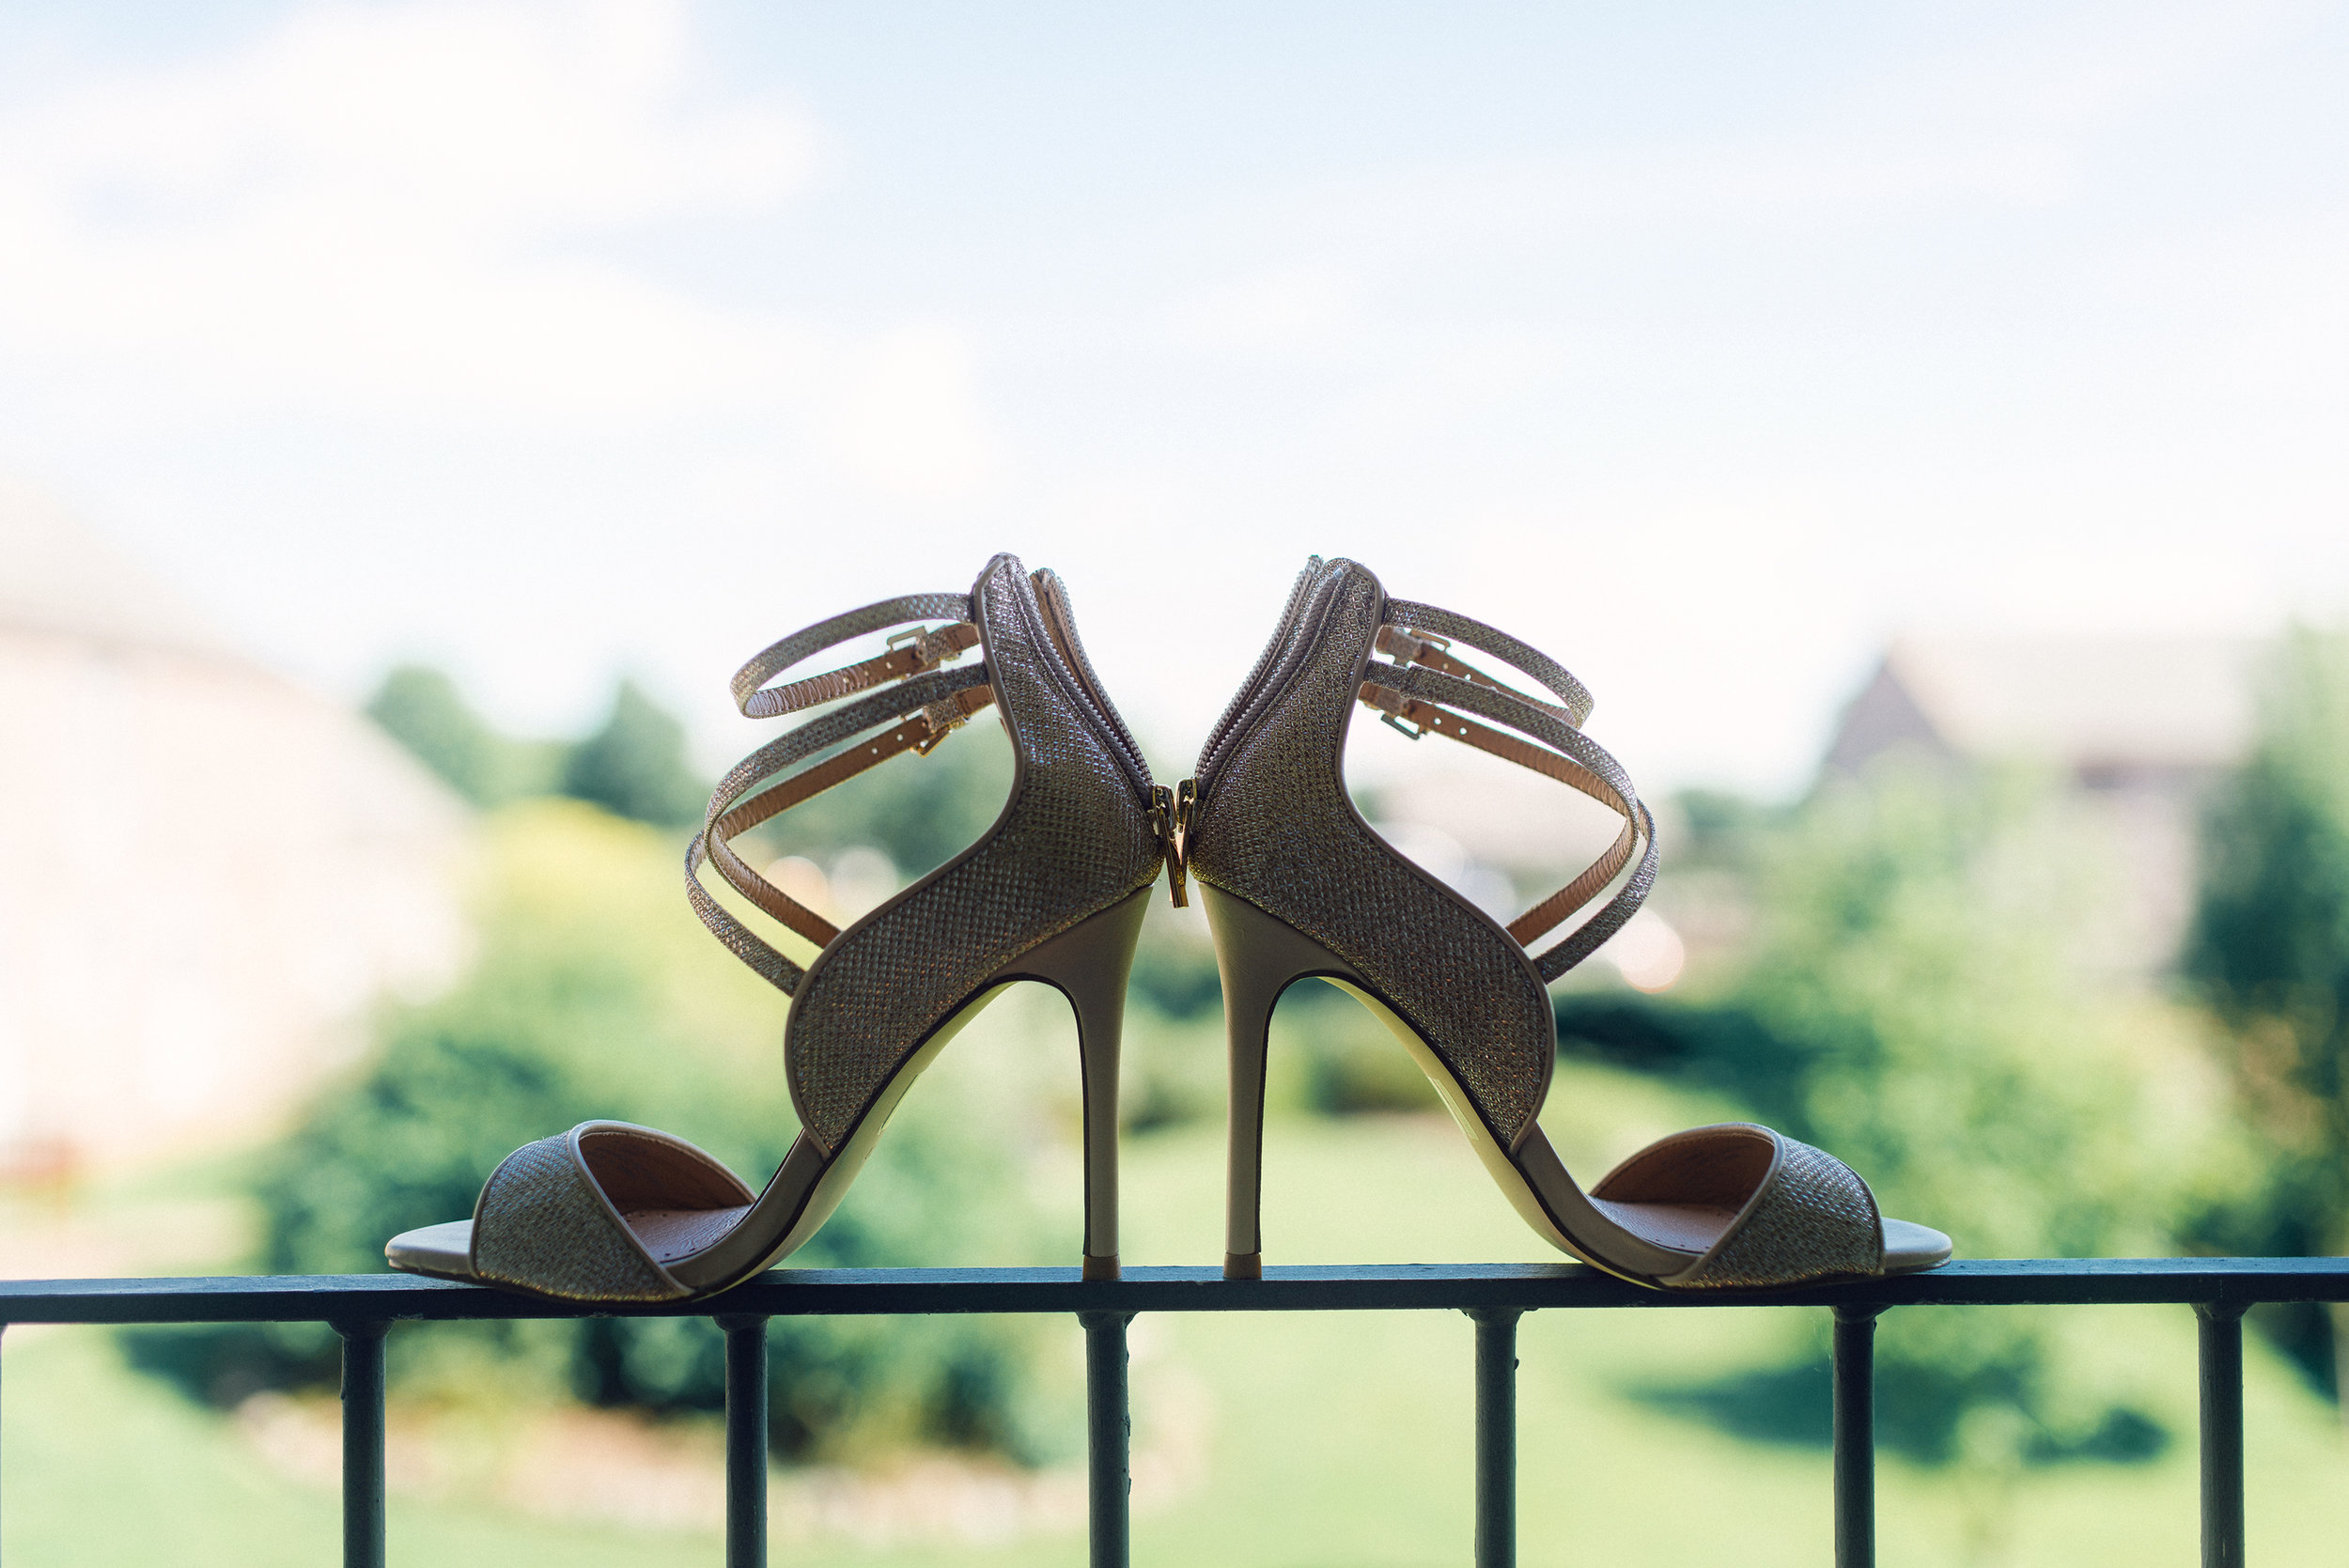 Brides shoes in the window